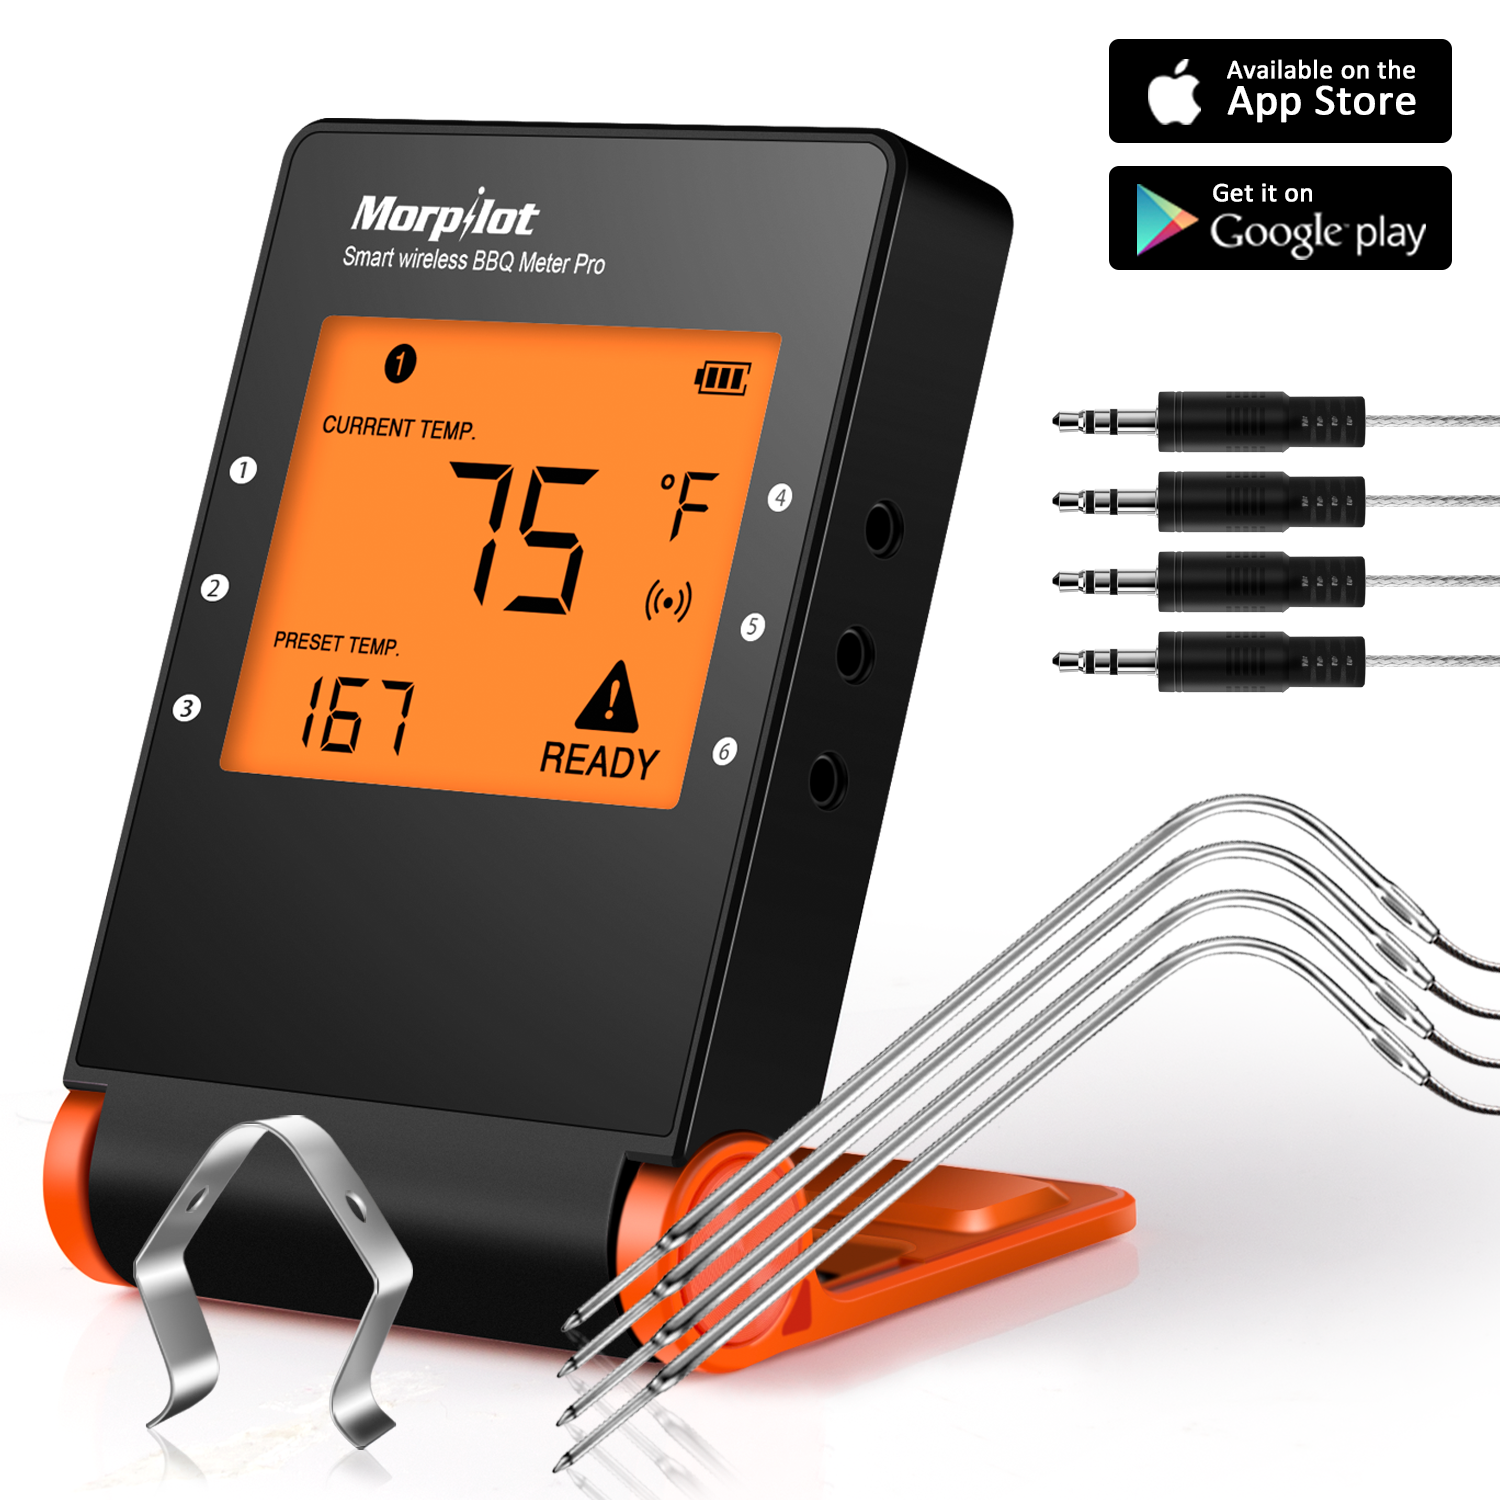 Wireless Meat Thermometers for  Kitchen Cooking BBQ Grill Smoker, Morpilot Bluetooth BBQ Grill Thermometer Smart Remote Digital Cooking Food with 4 Probes for Outdoor Oven Griddle Indoor Kitchen